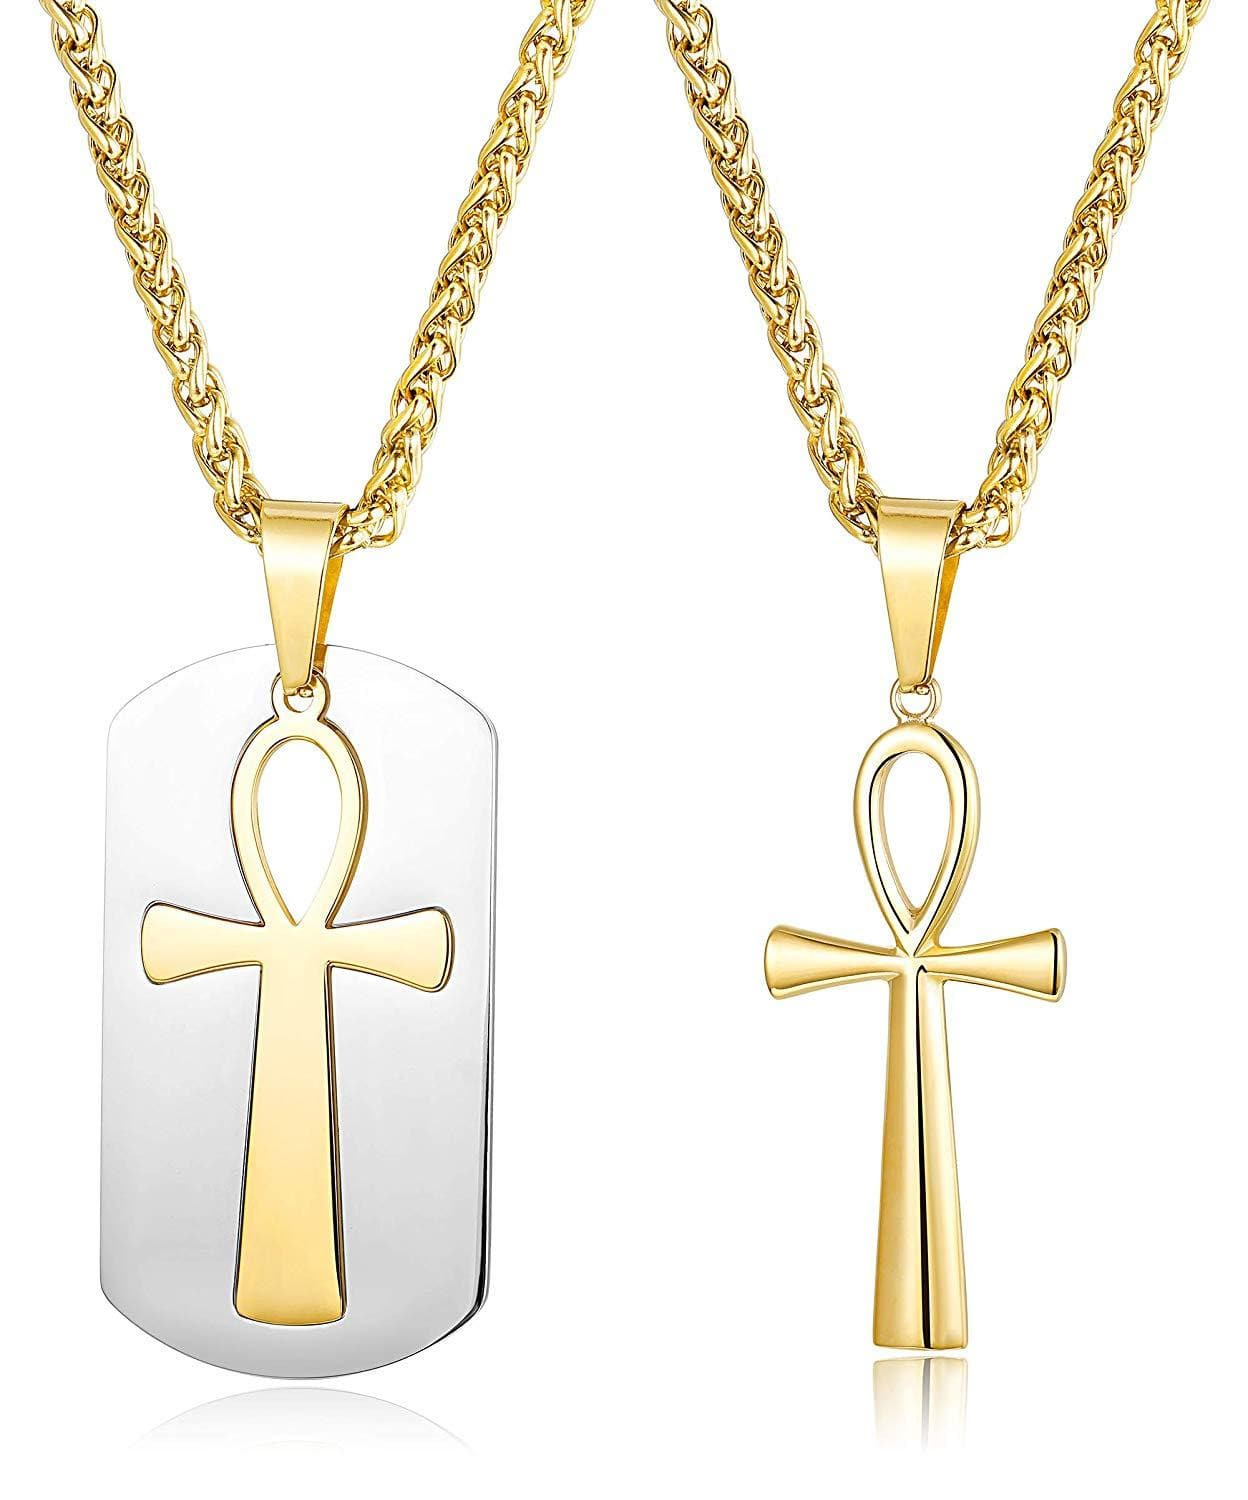 ORAZIO 2PCS Stainless Steel Egyptian Ankh Cross Pendant Necklace for Men Women Dog Tag Religious Necklace Chain, 22 24 Inch